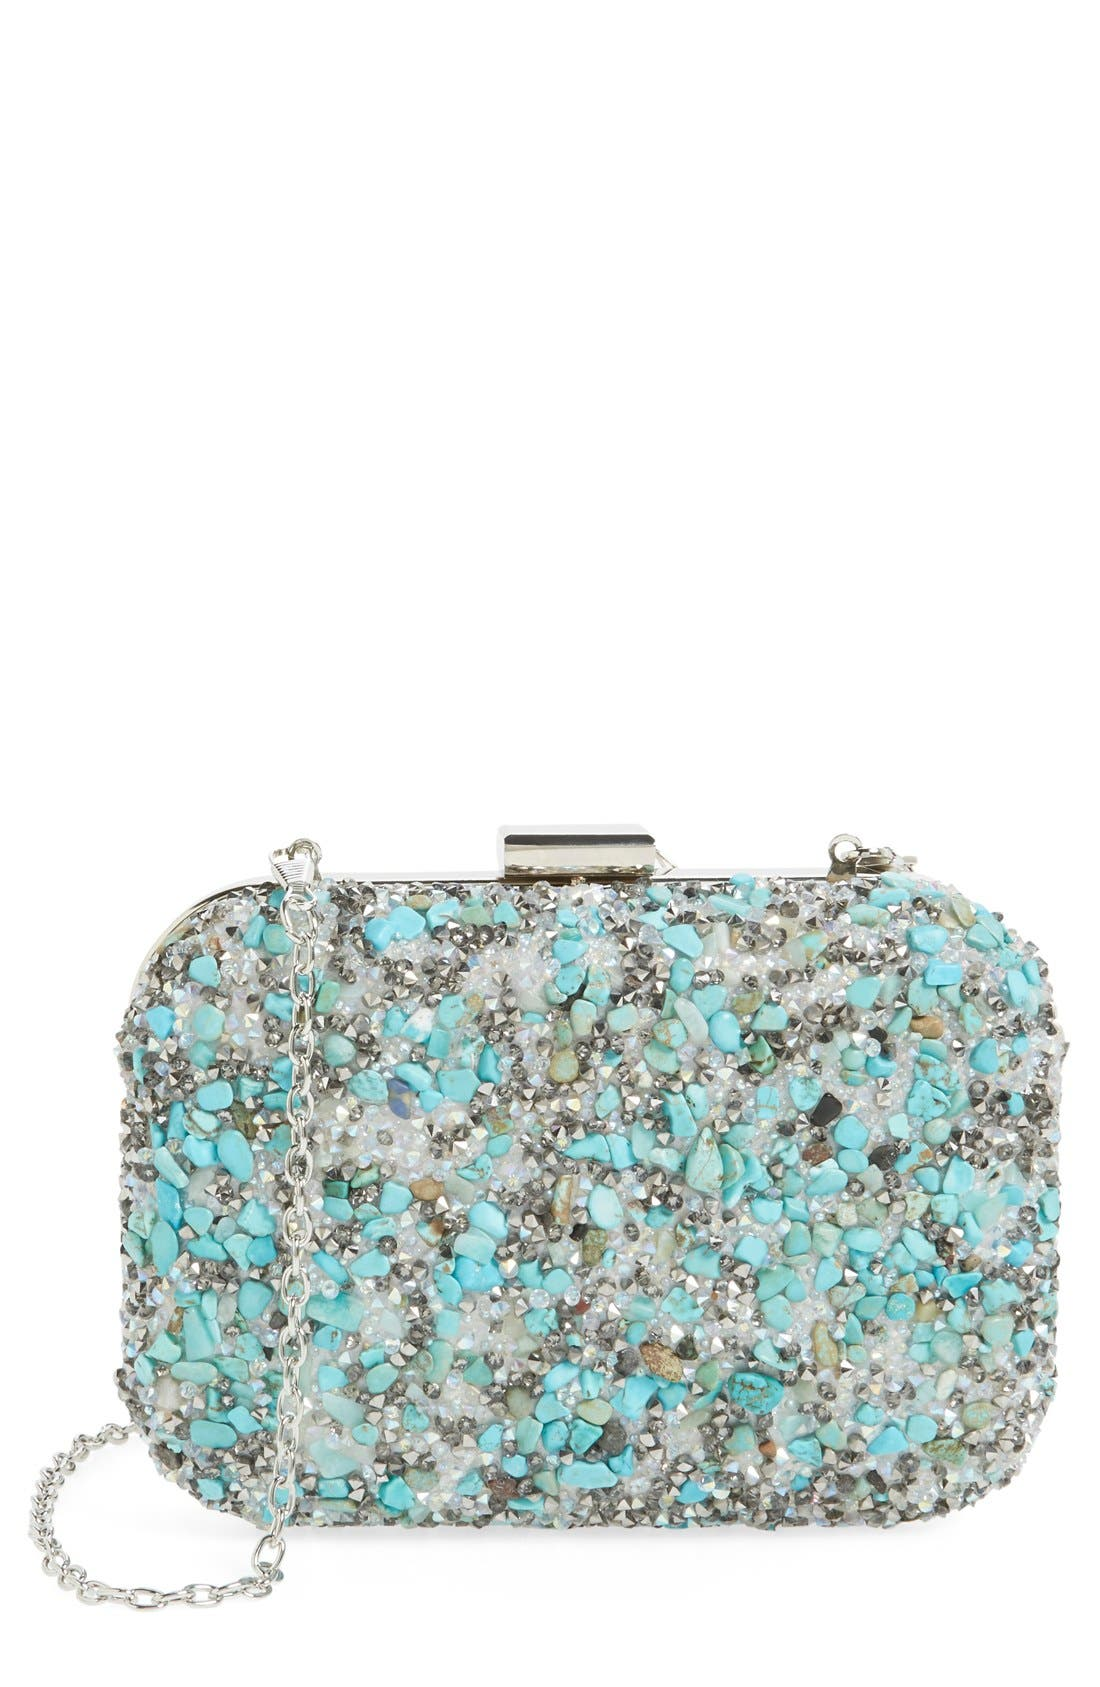 Alternate Image 1 Selected - Natasha Couture Stone & Crystal Clutch